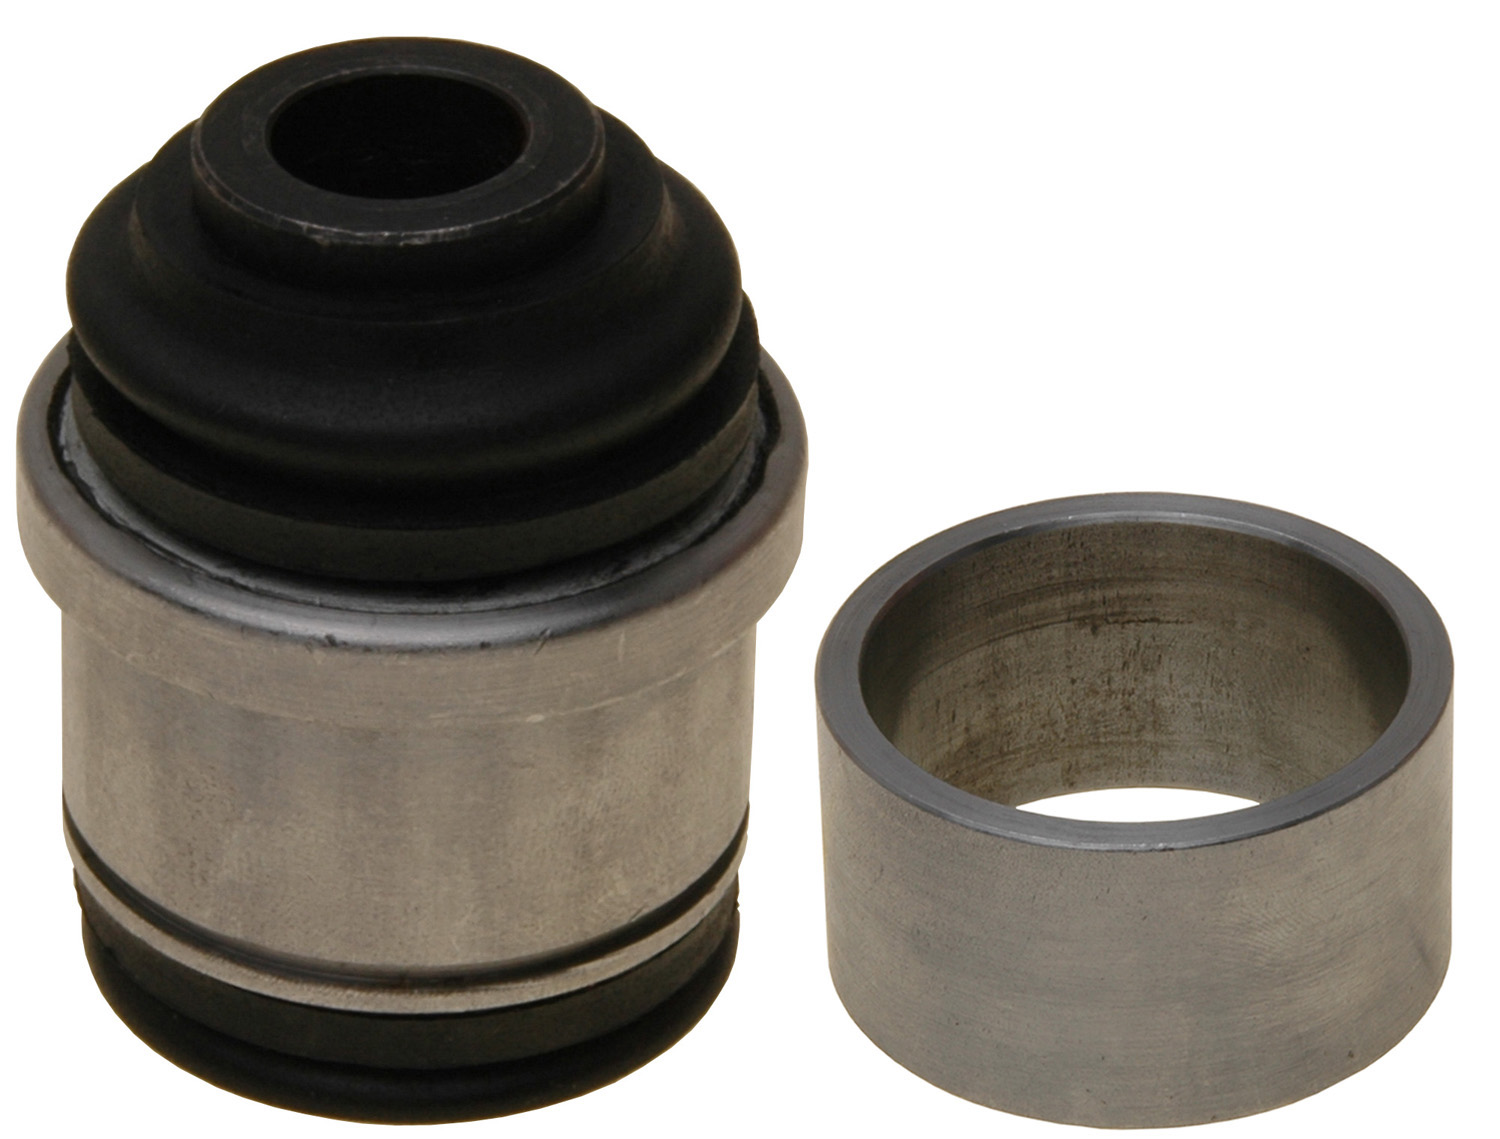 ACDELCO PROFESSIONAL - Suspension Knuckle Bushing - DCC 45G31003